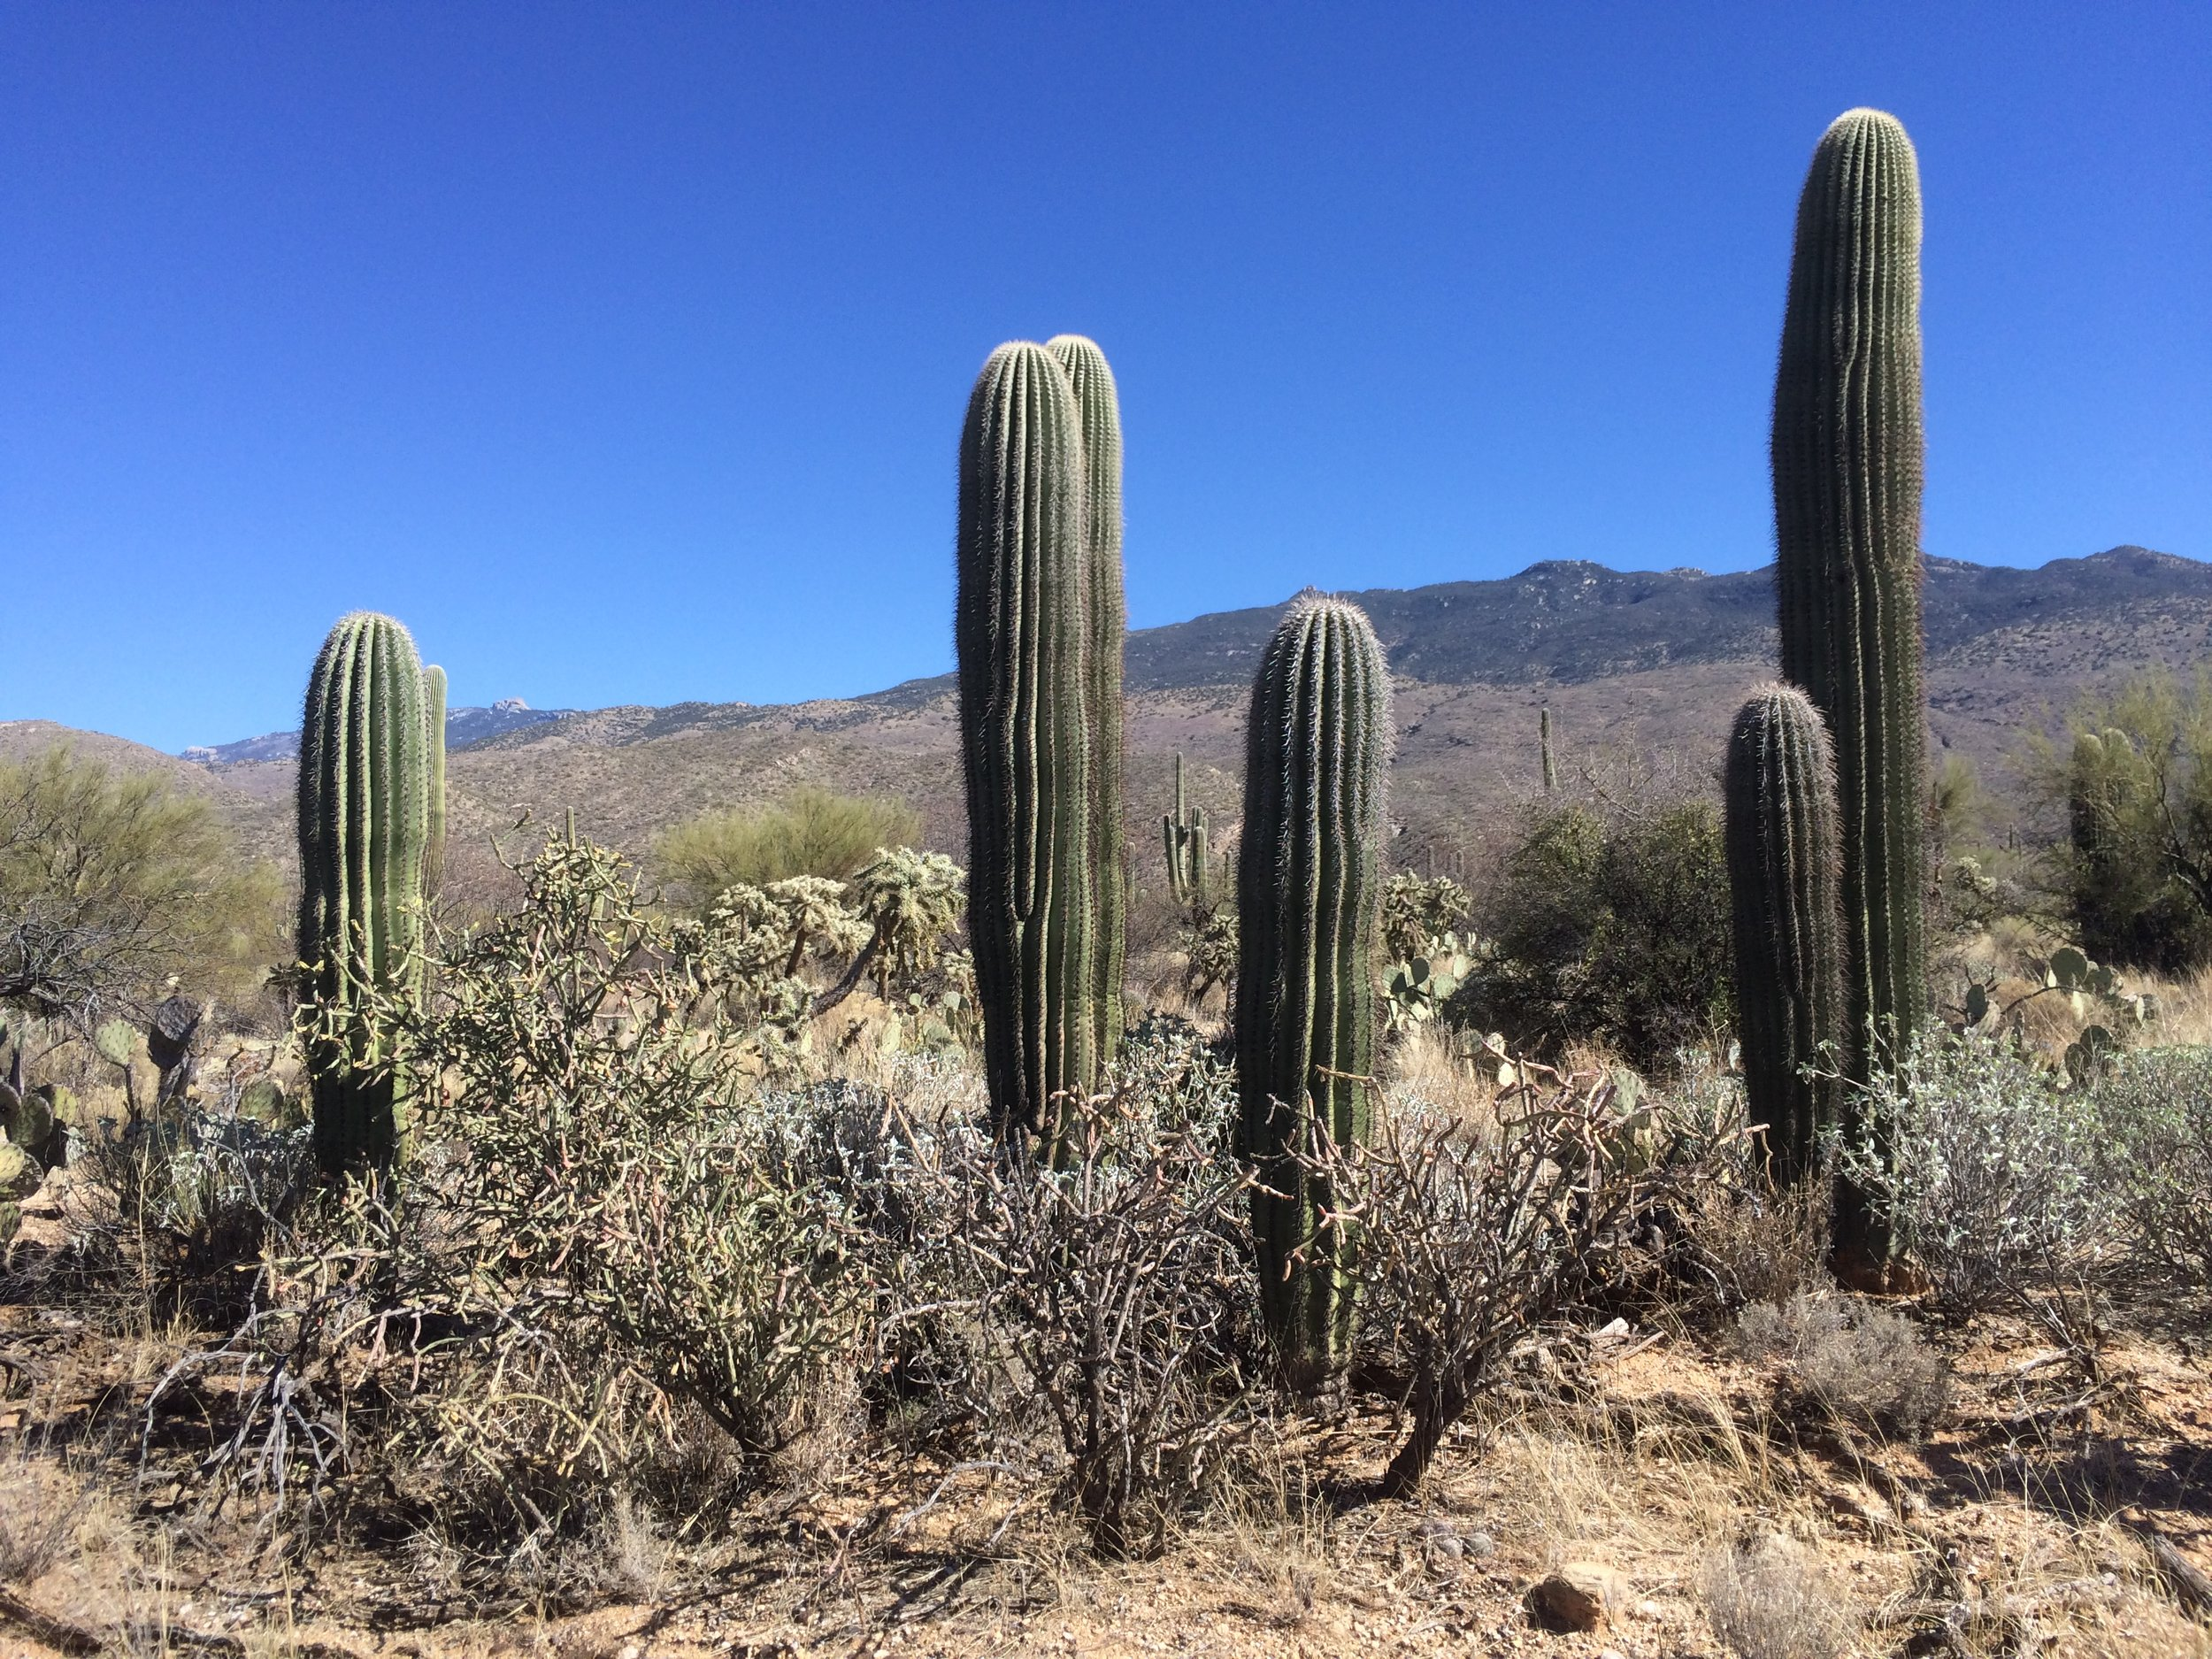 Saguaros grow slowly. These little ones are probably 15-20 years old.